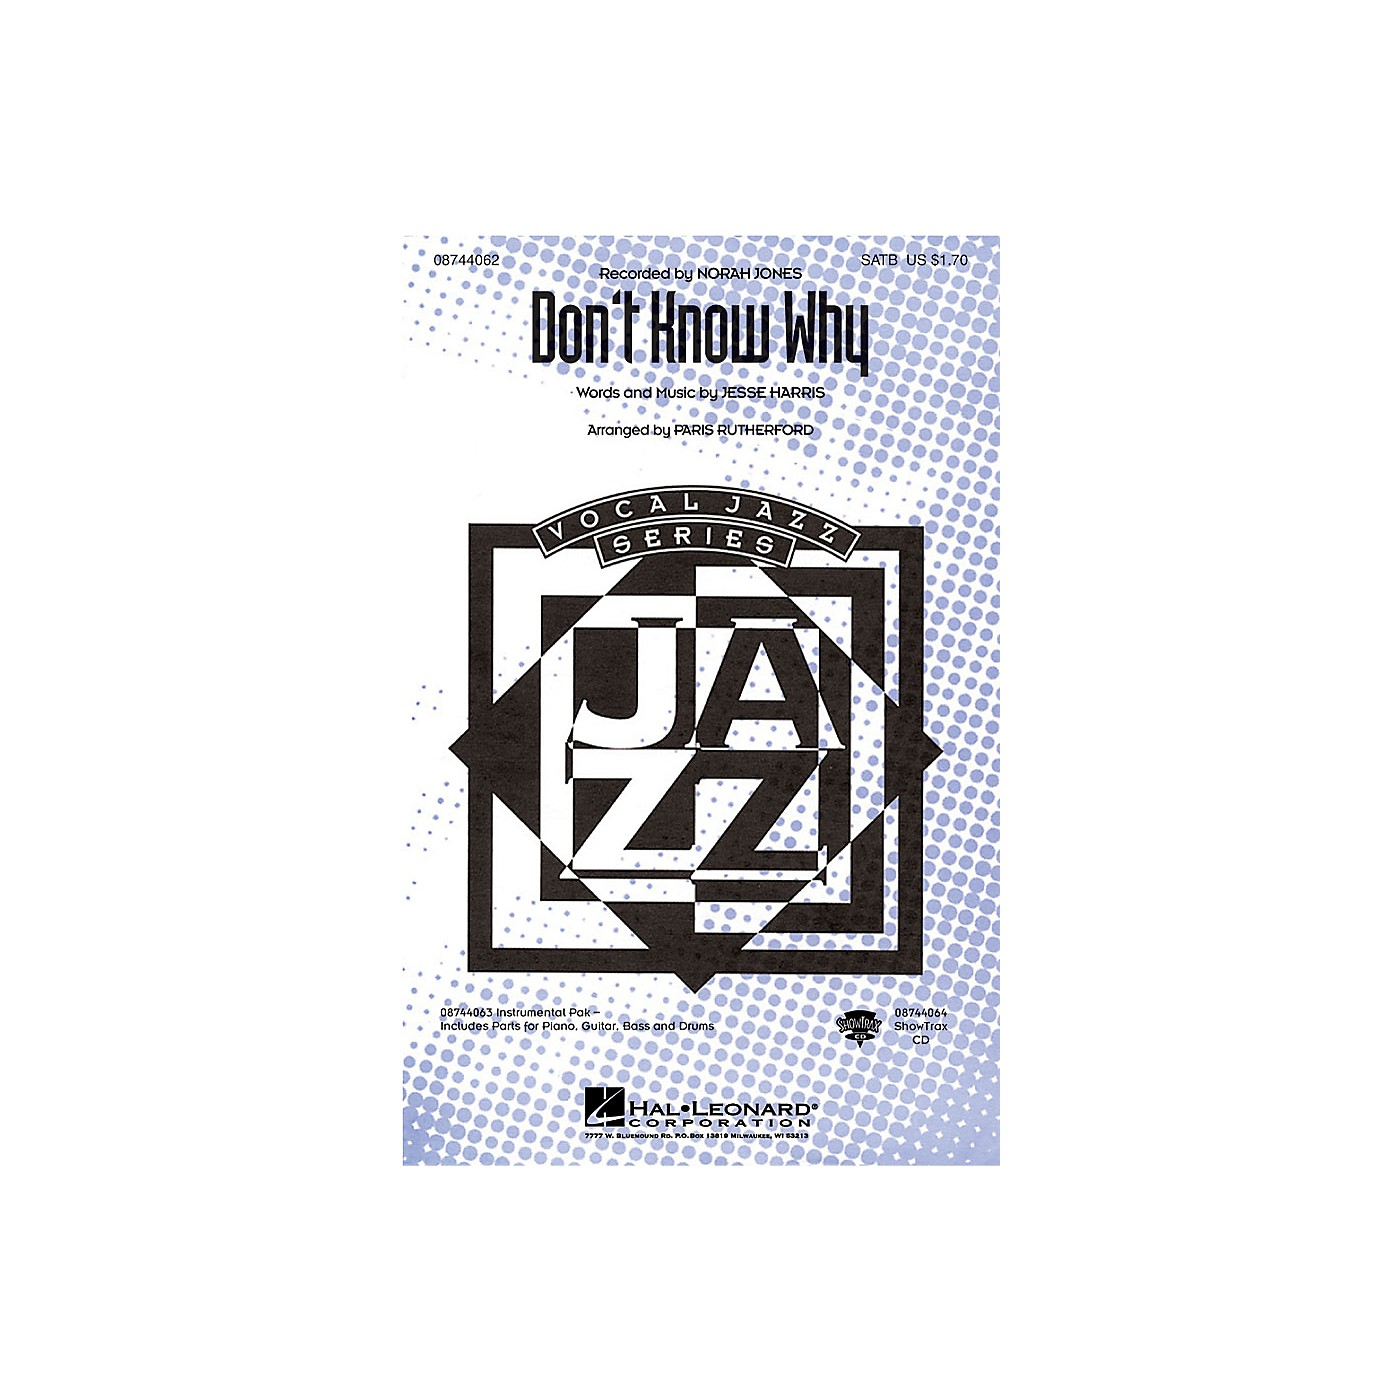 Hal Leonard Don't Know Why ShowTrax CD by Norah Jones Arranged by Paris Rutherford thumbnail